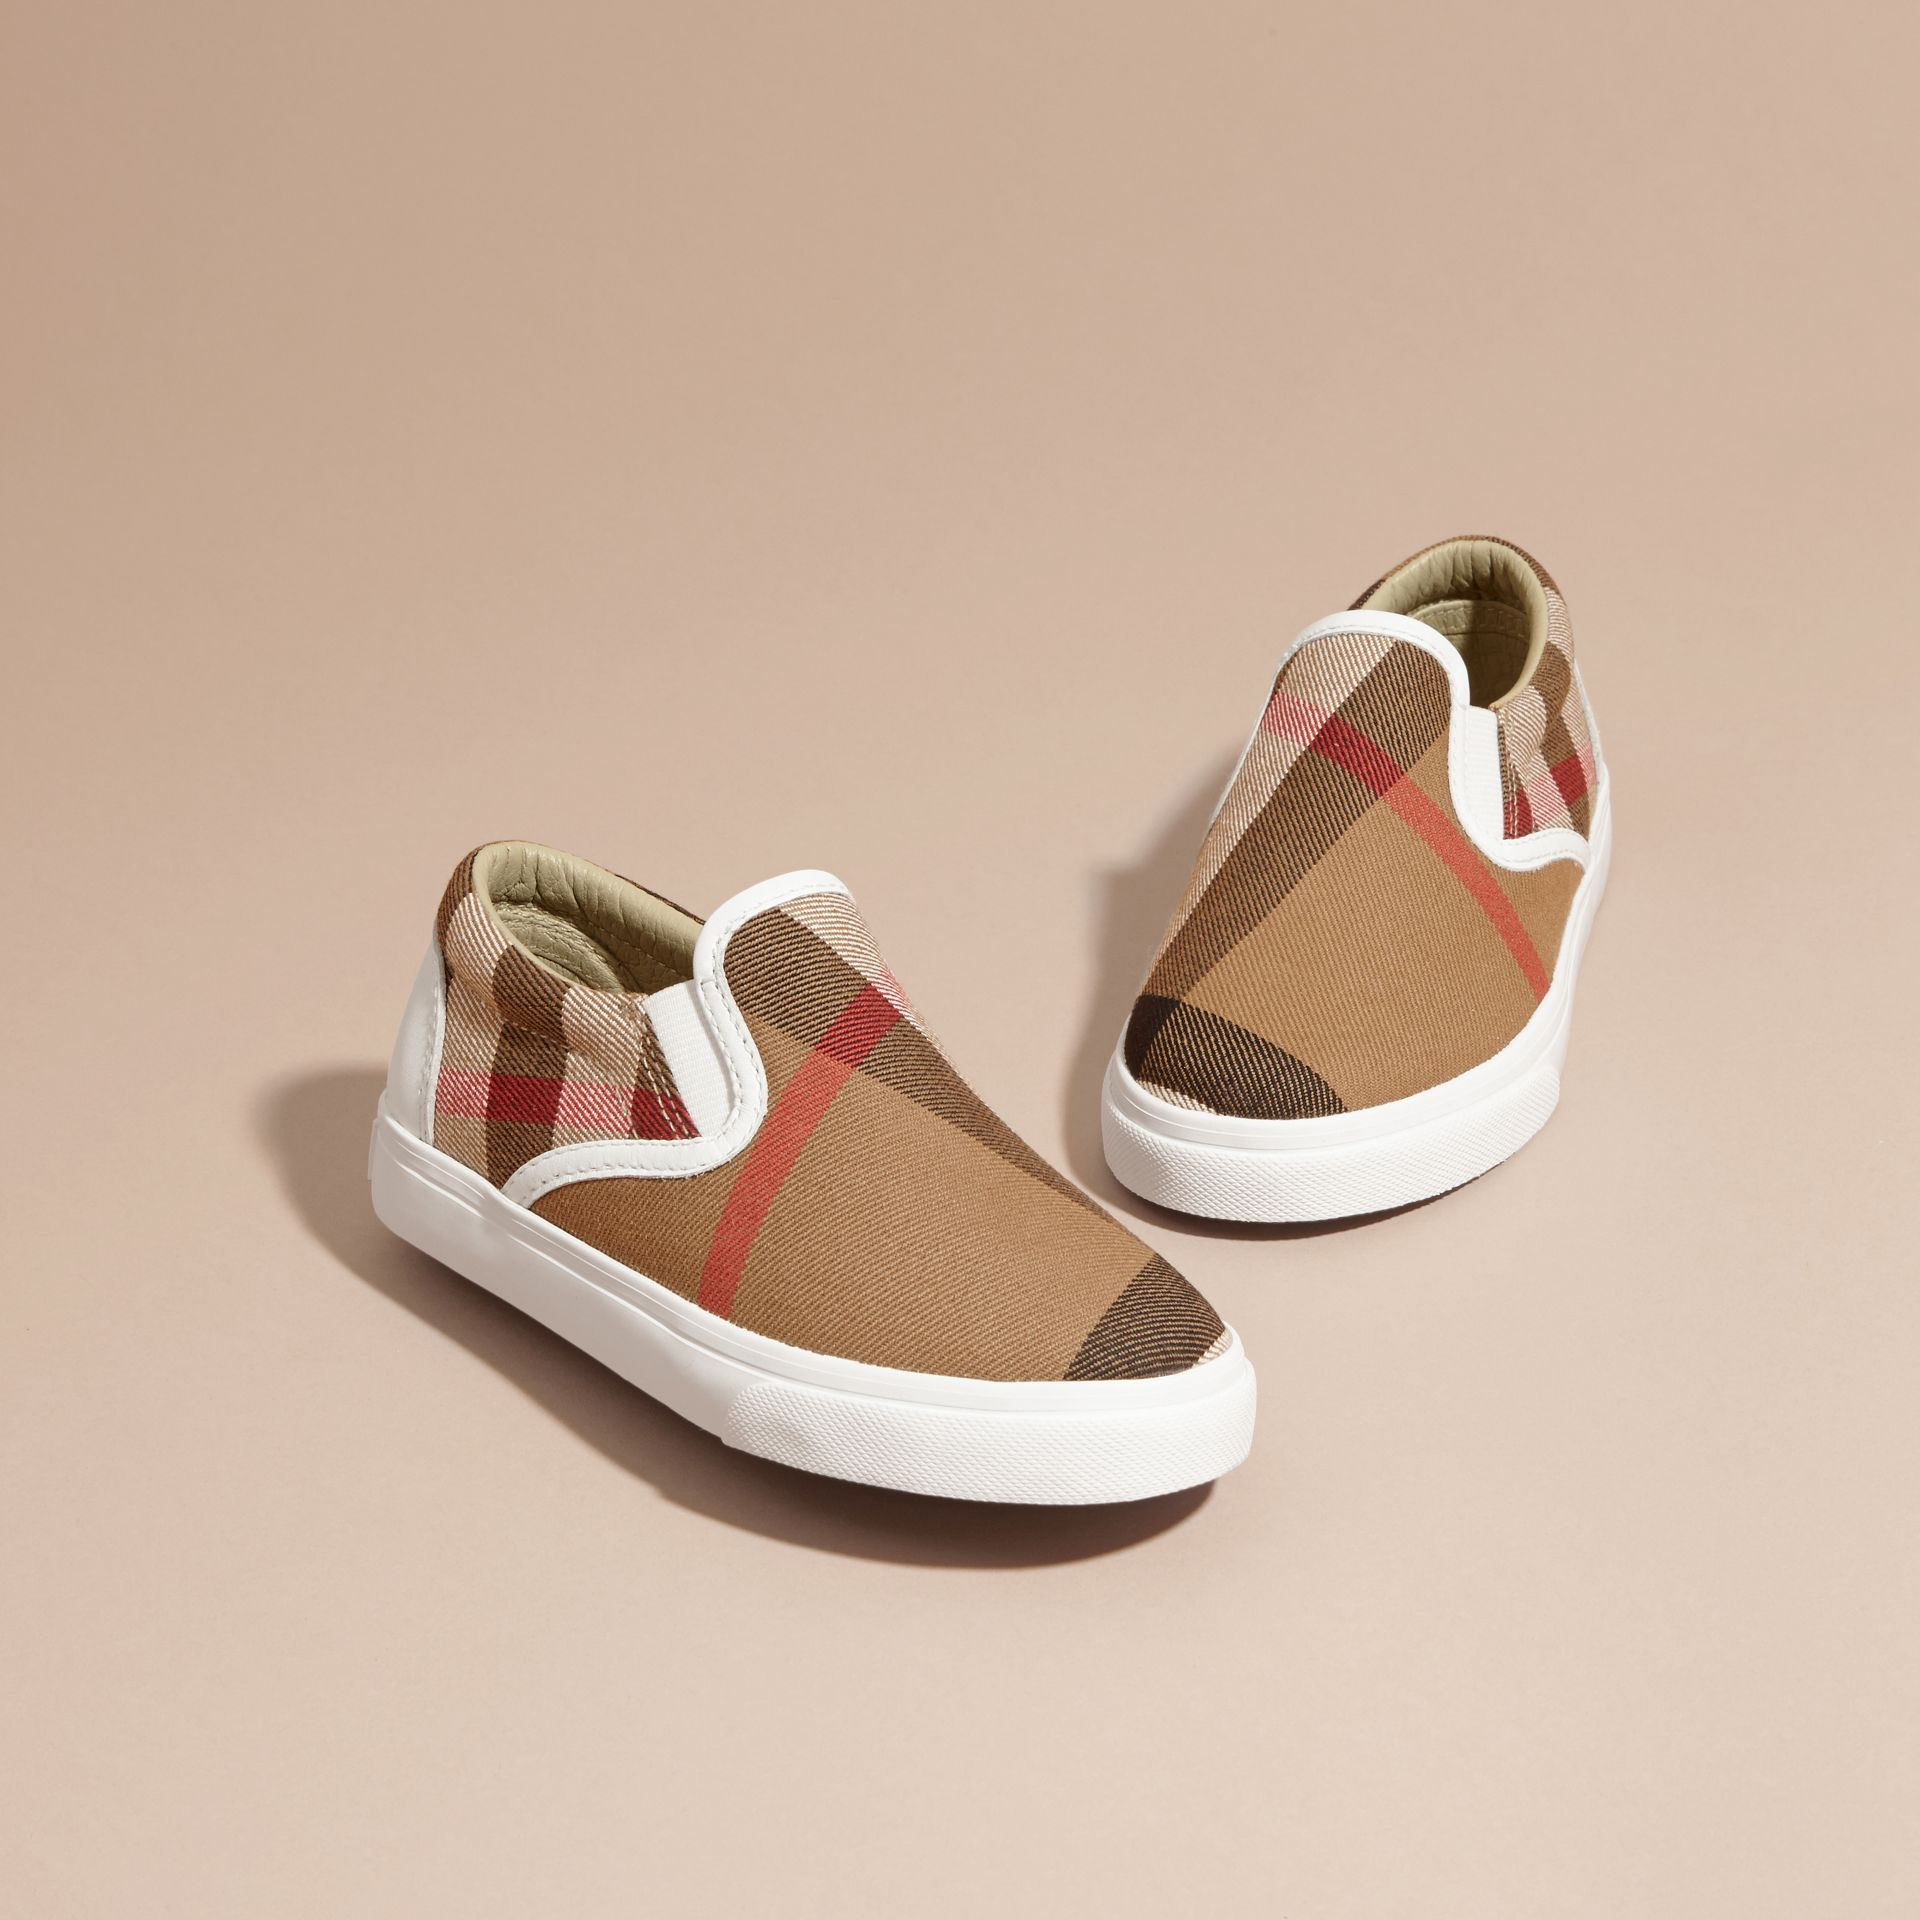 House Check Cotton Slip-On Trainers in White | Burberry United States - gallery image 3